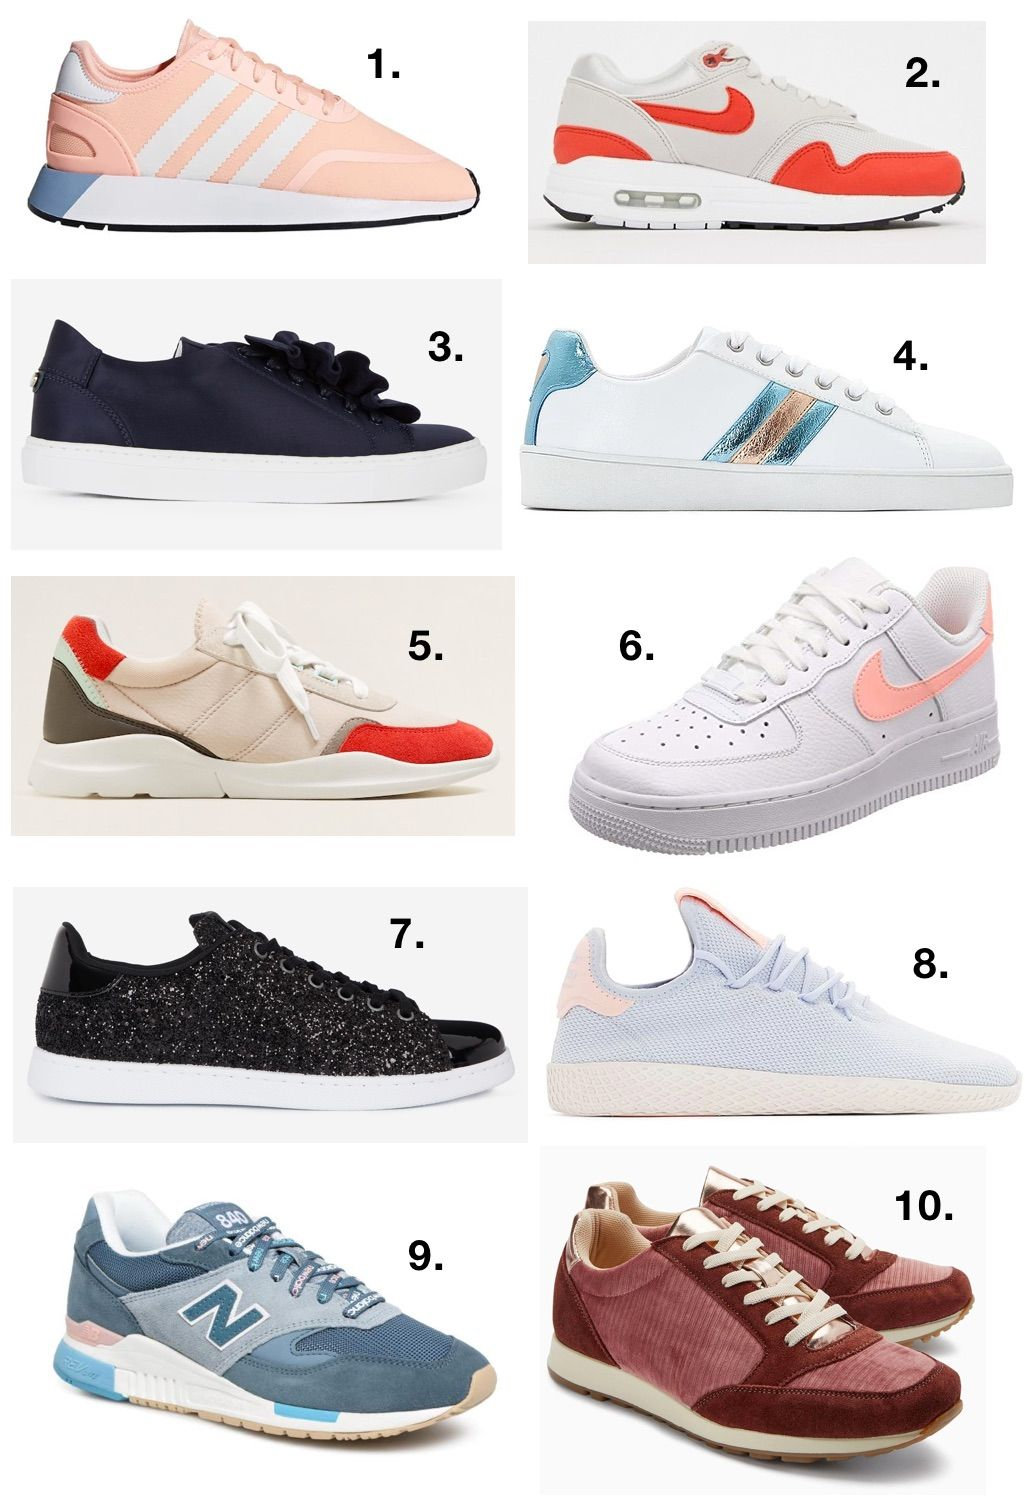 7bca49ee591e Baskets automne-hiver 2018-2019   10 sneakers tendances qu on adore !   baskets  sneakers  adidas  nike  newbalance